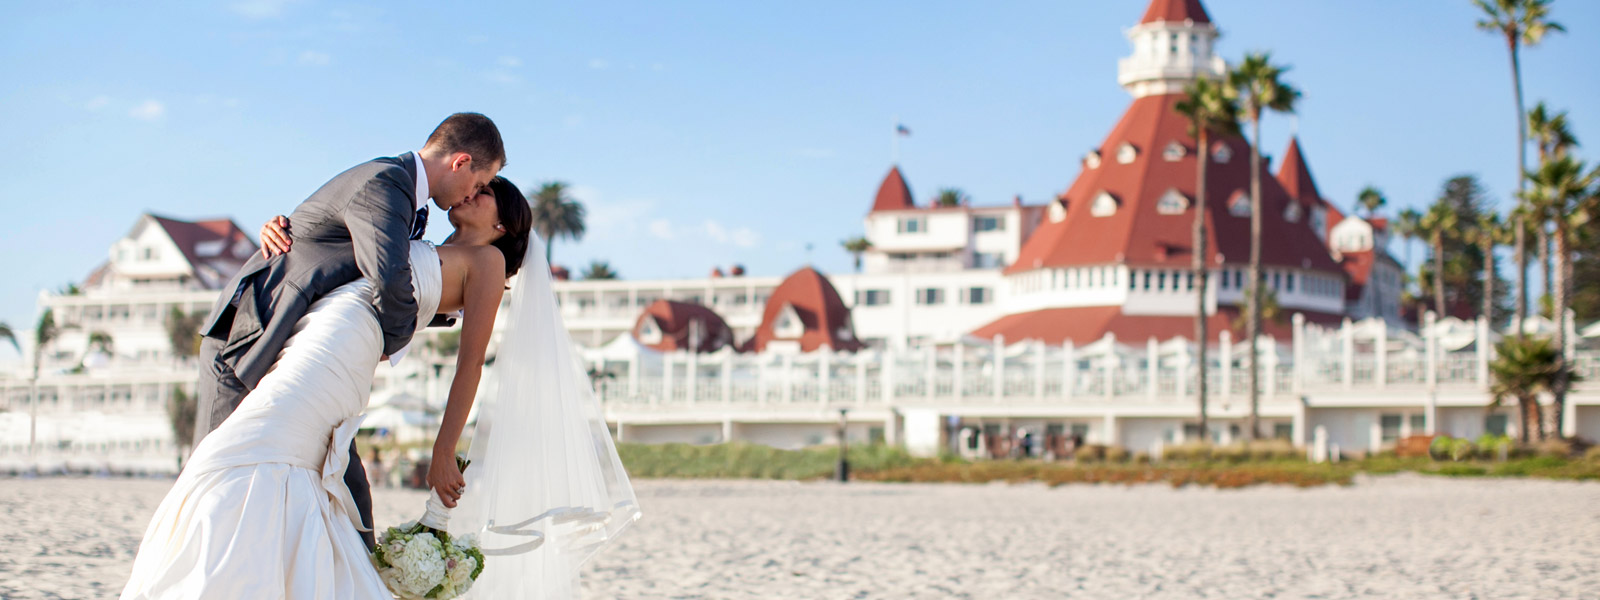 hoteldelcoronado-weddings-beach